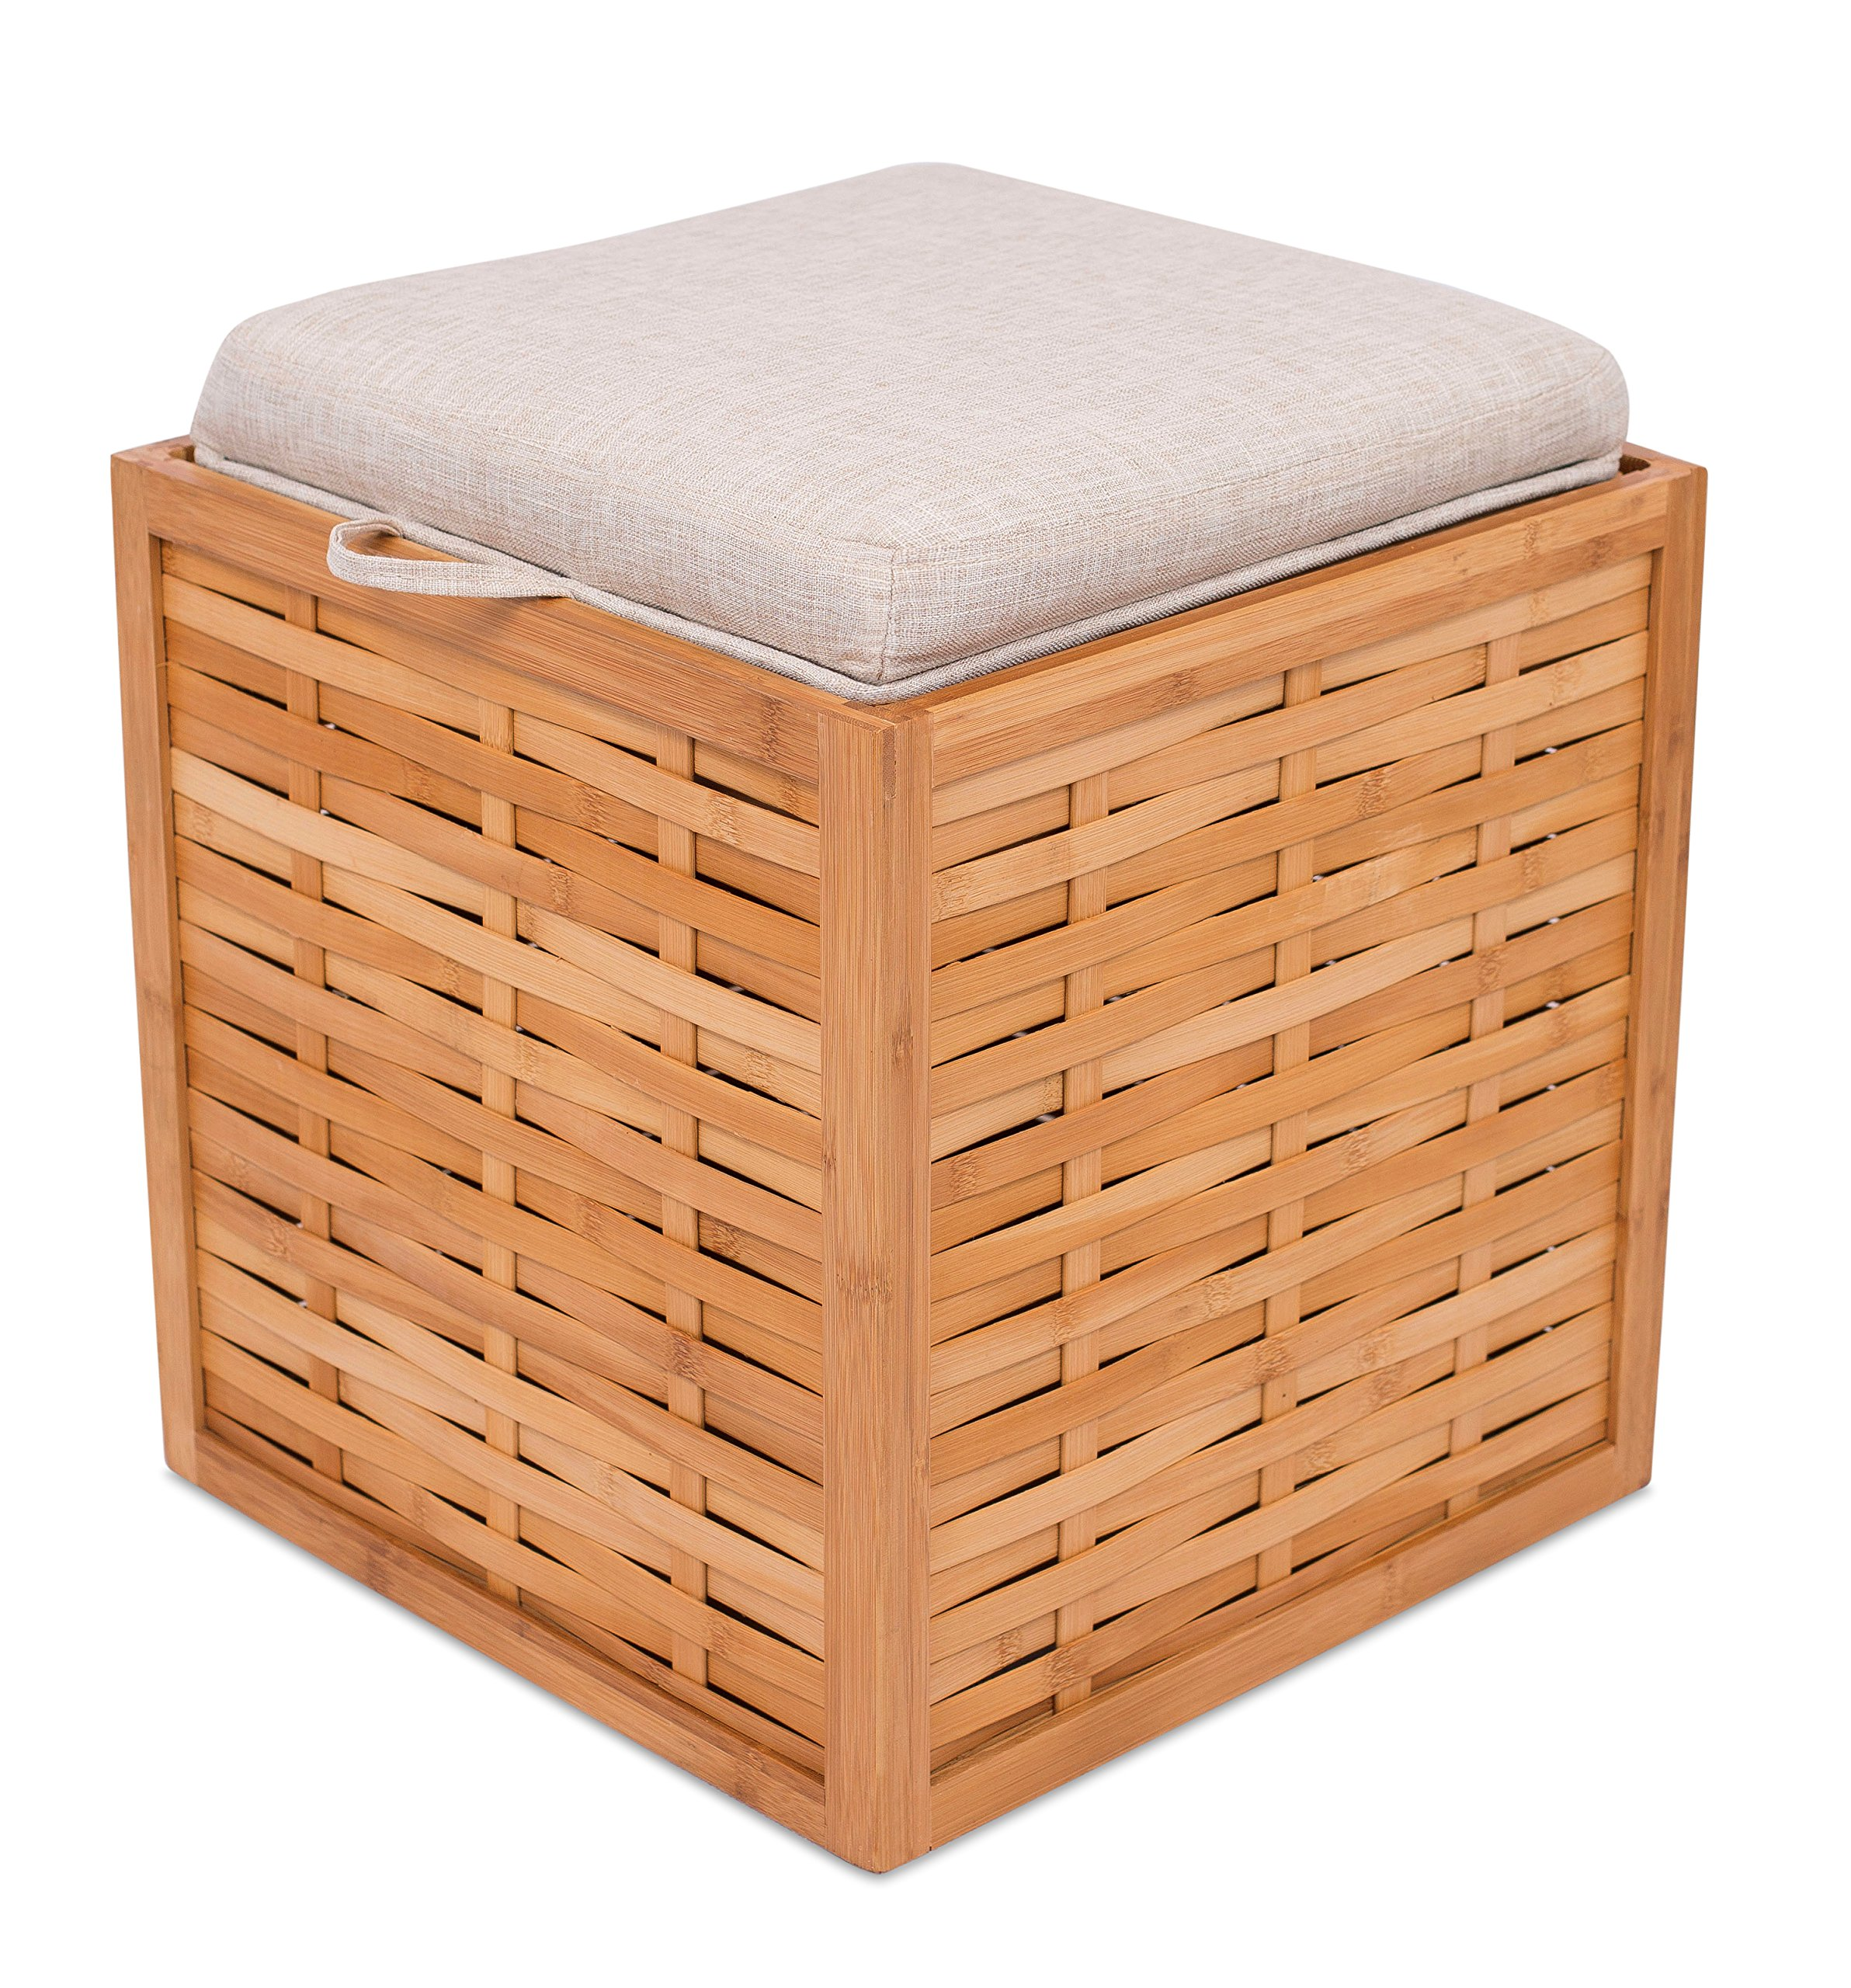 BirdRock Home Bamboo Storage Ottoman | Storage Box | Reversible Linen Cushioned Top and Serving Tray | Natural Spa Ottoman